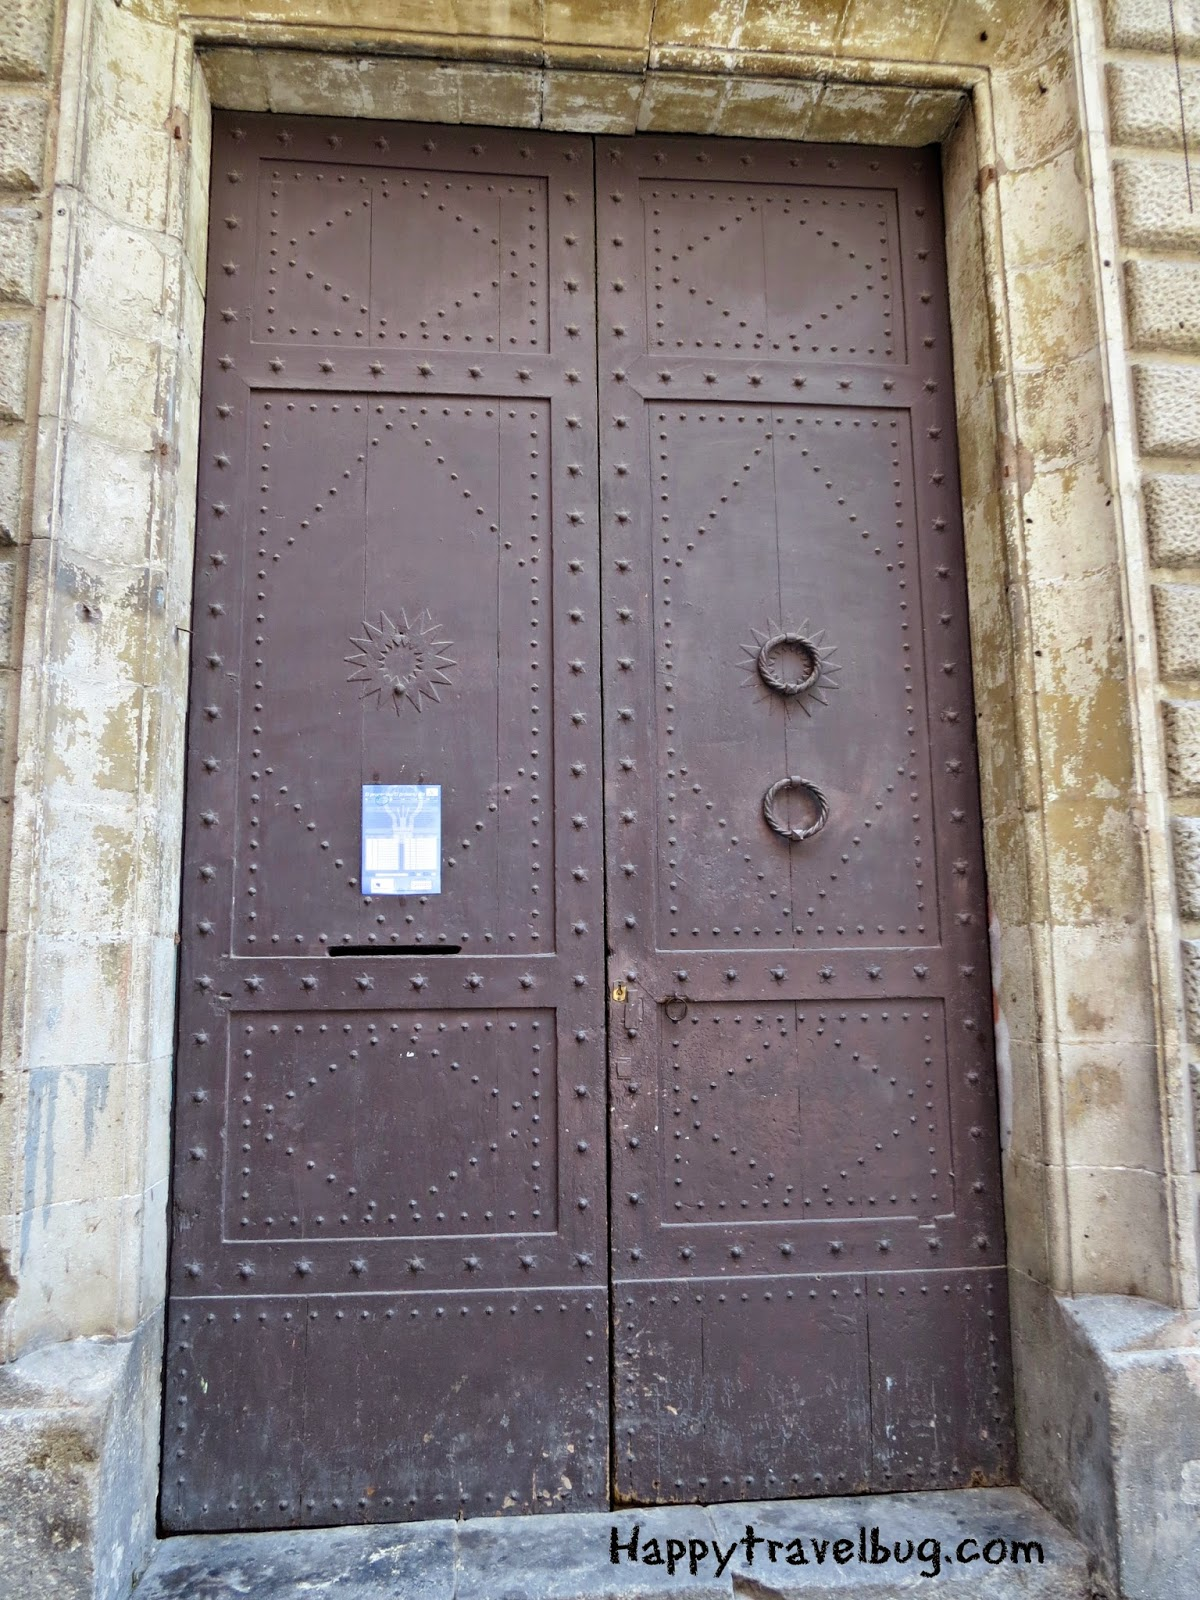 Metal door in Barcelona, Spain